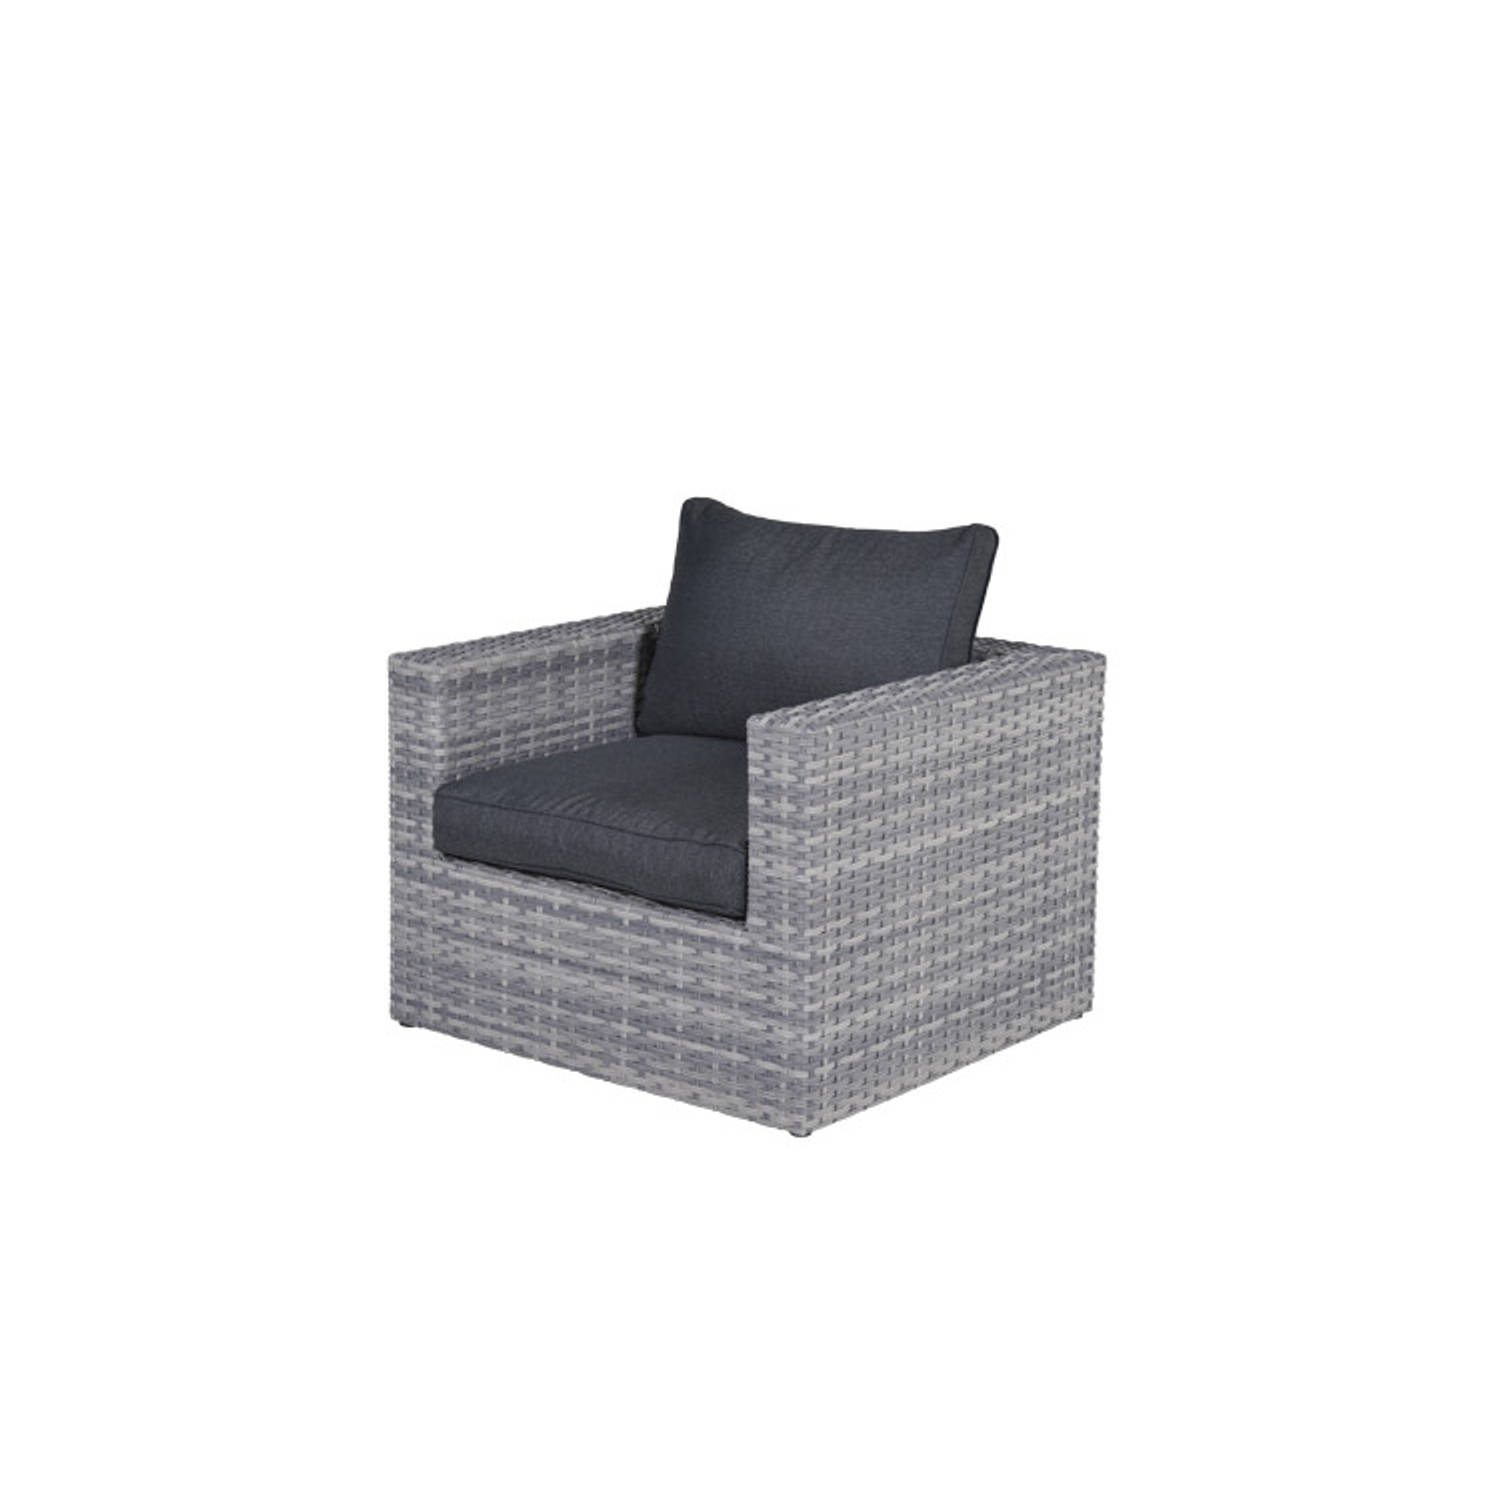 Garden Impressions Toulouse Lounge Fauteuil Cloudy Grey